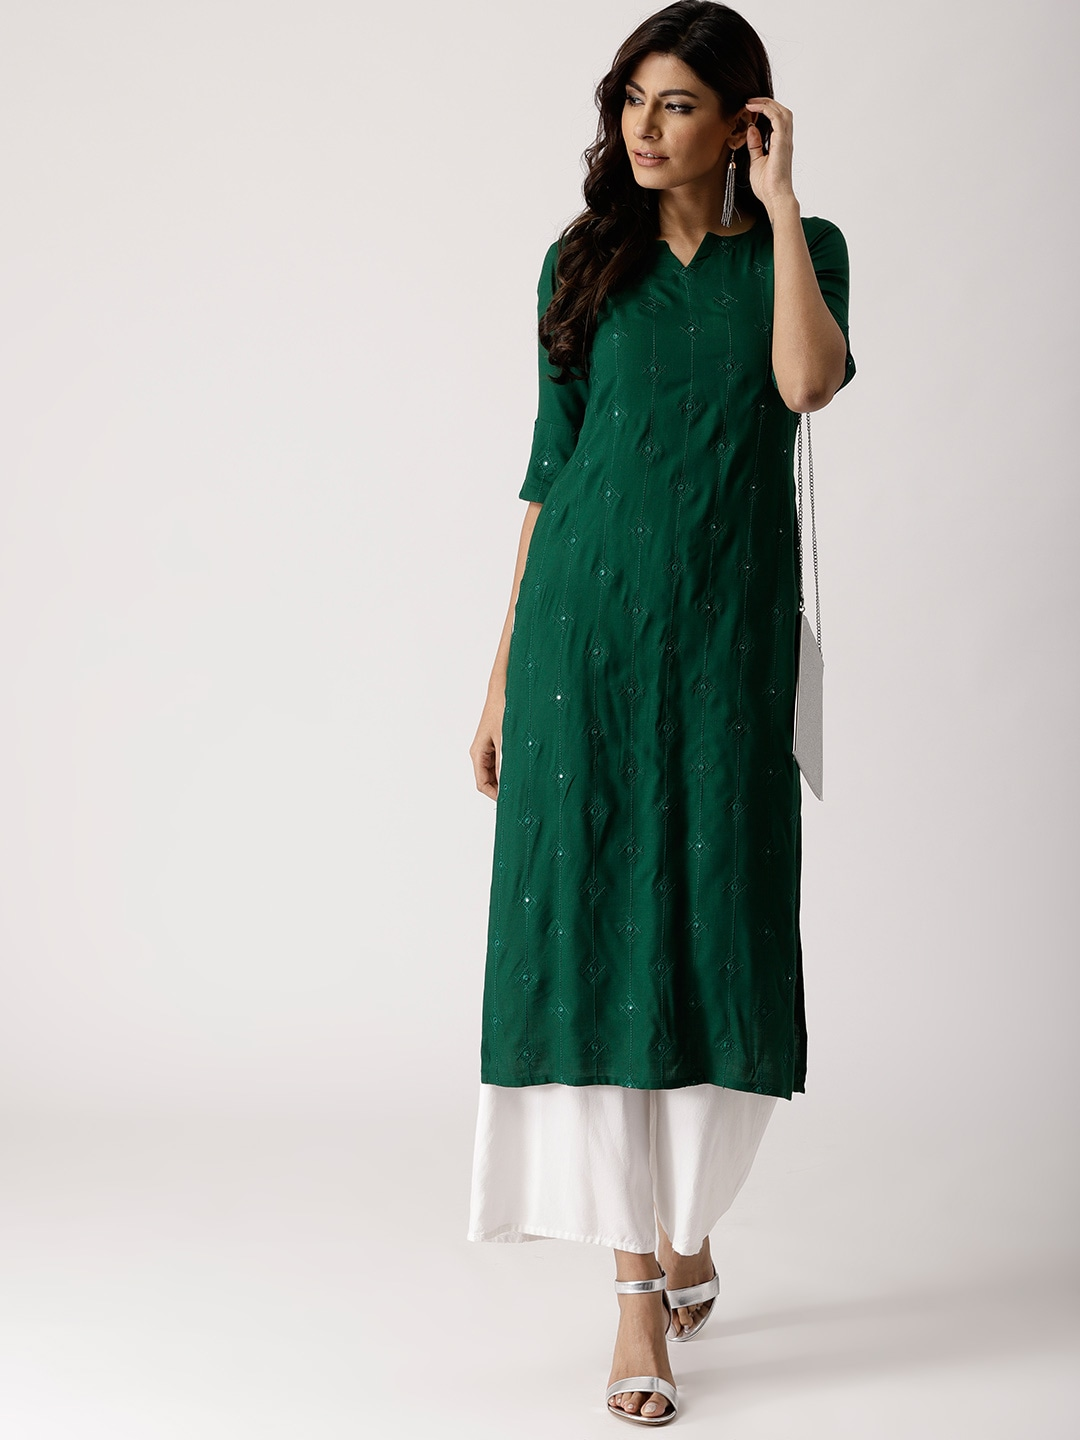 daed4af3e4e Mirror Work Kurtas - Buy Mirror Work Kurtas online in India